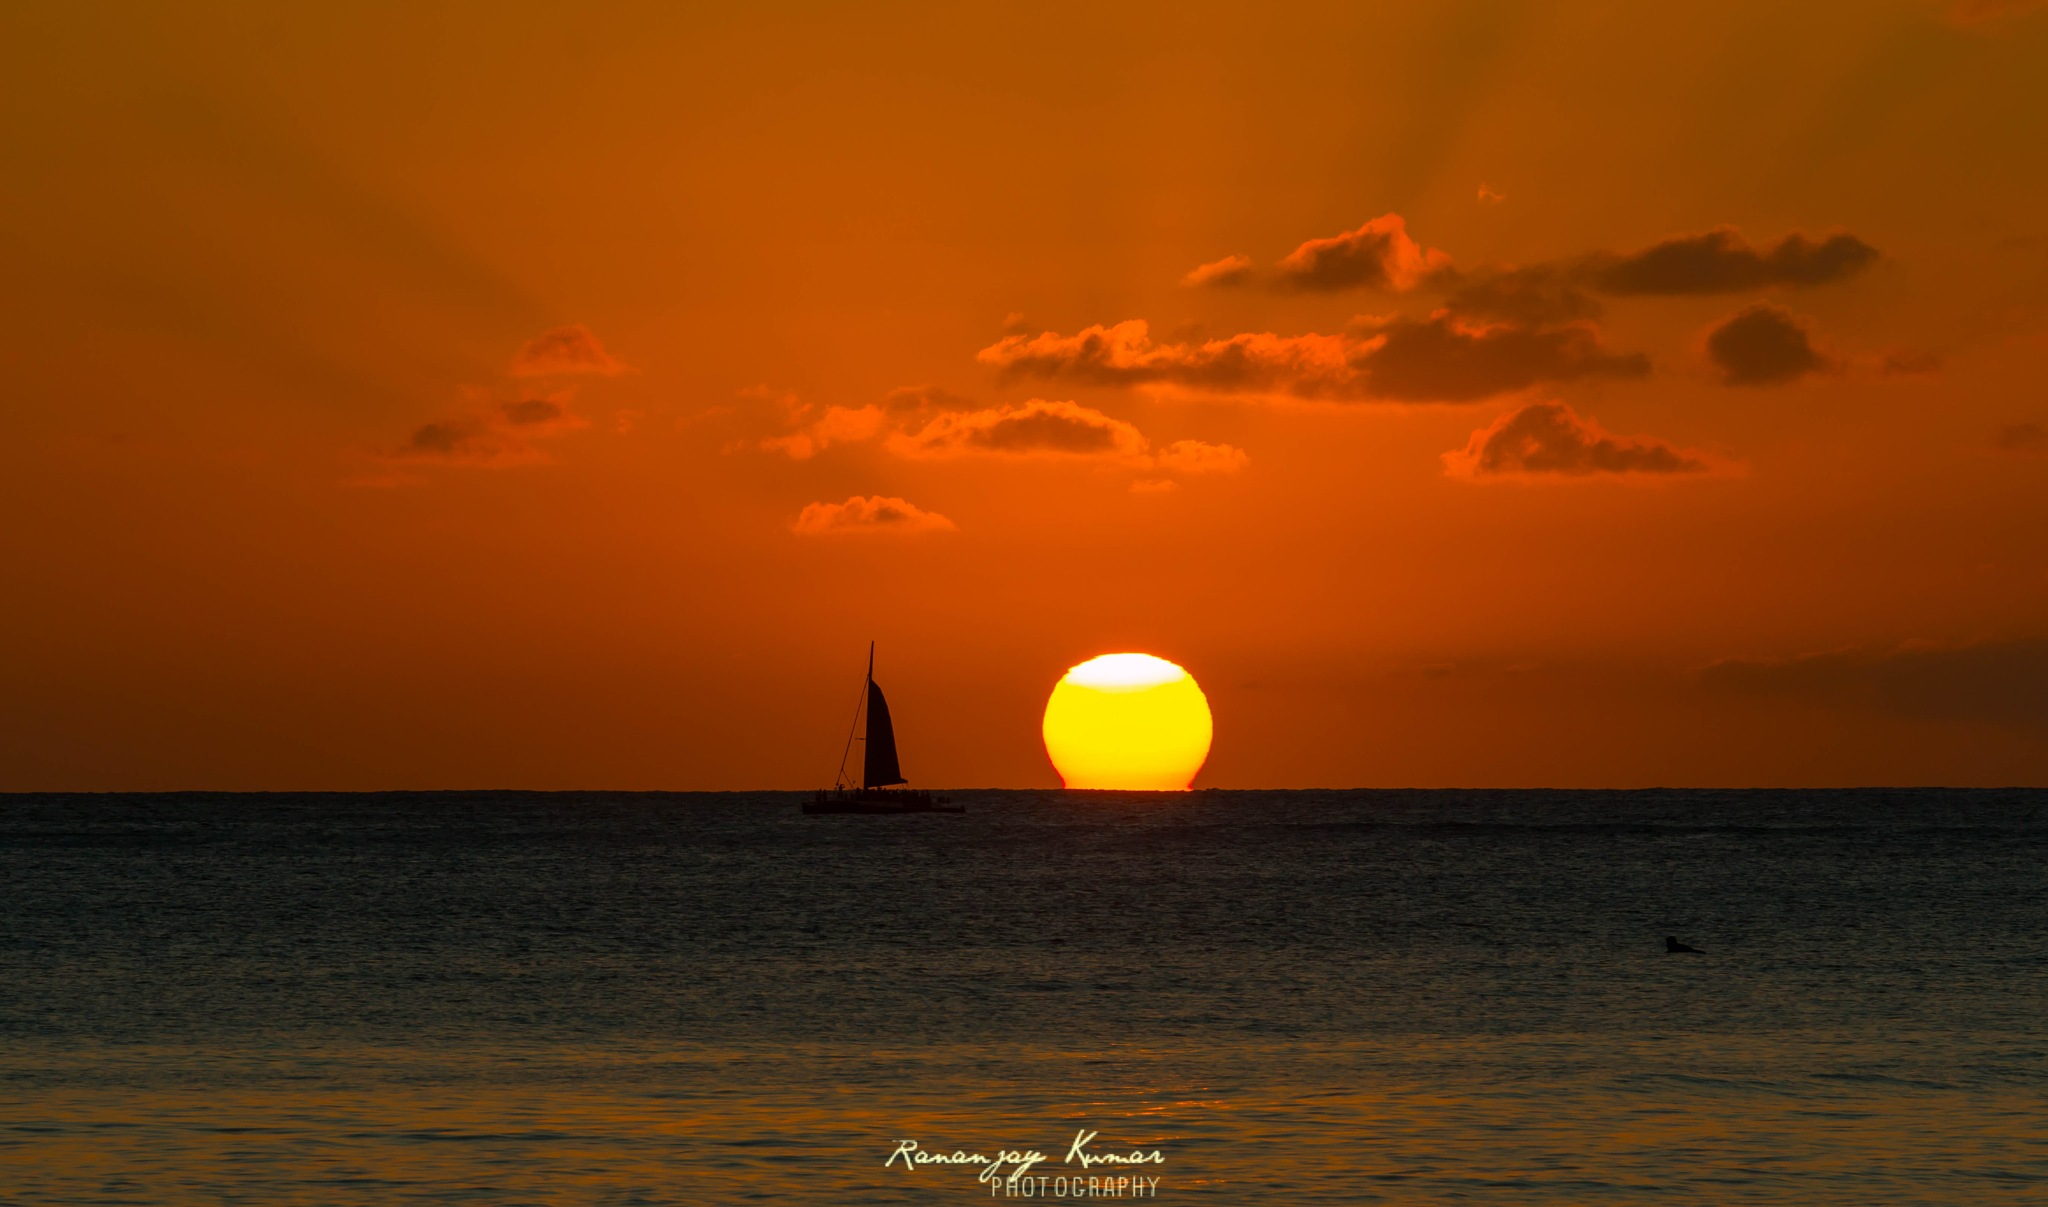 Hawaiian Sunset by Rananjay Kumar